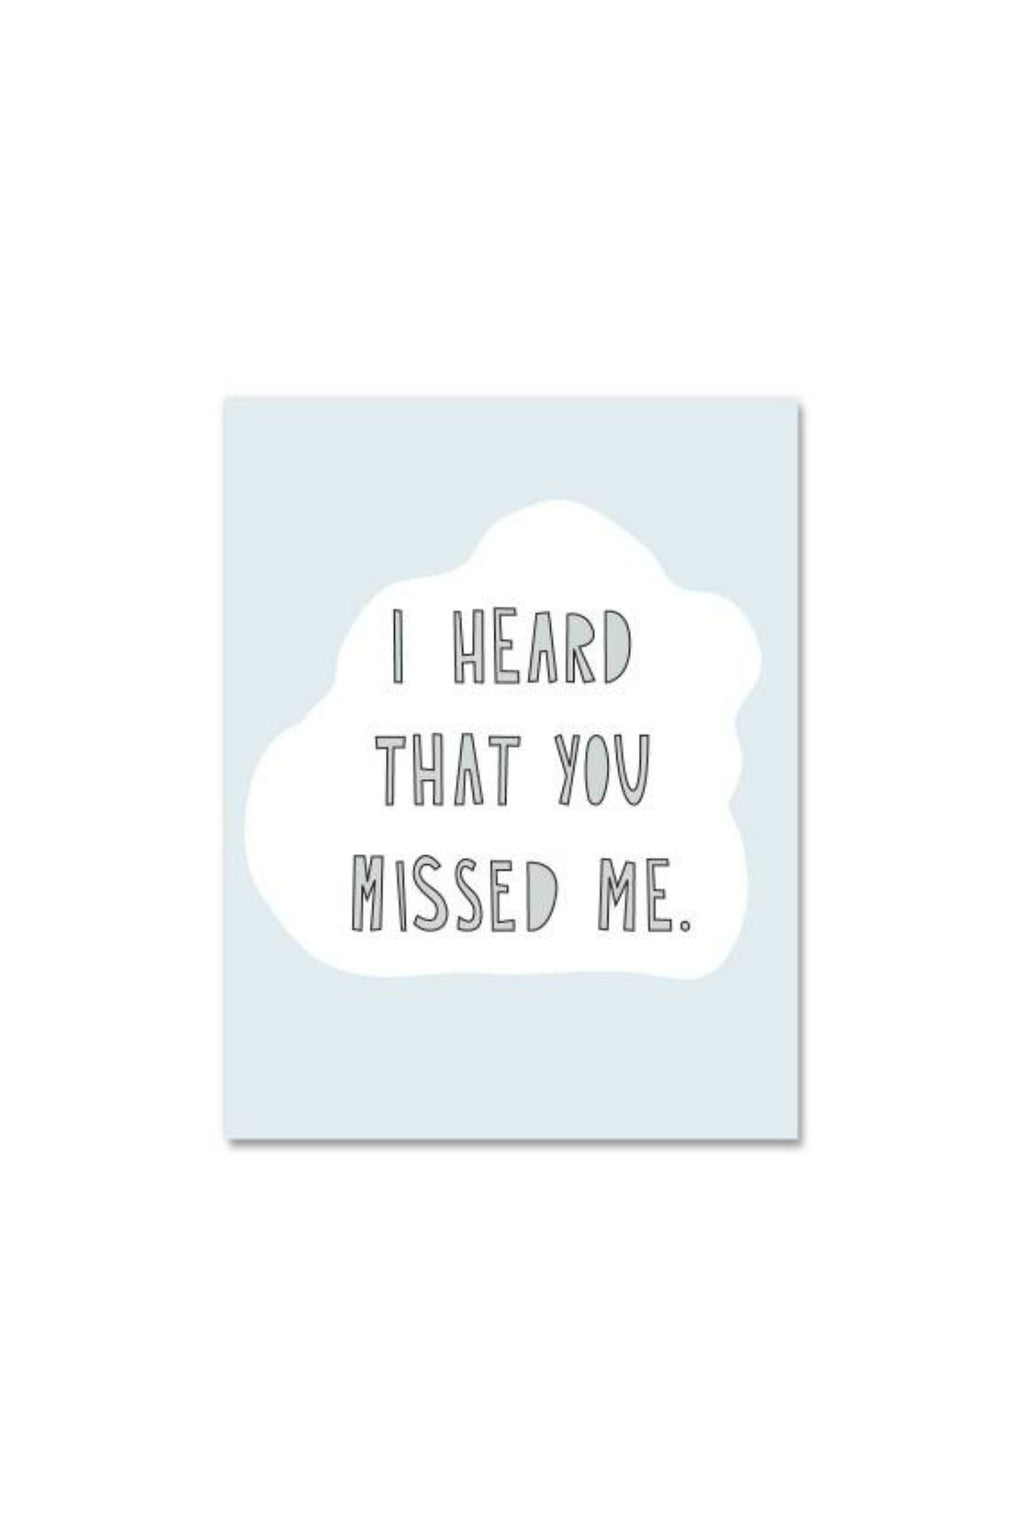 Near Modern Disaster Greeting Card - Heard You Missed Me